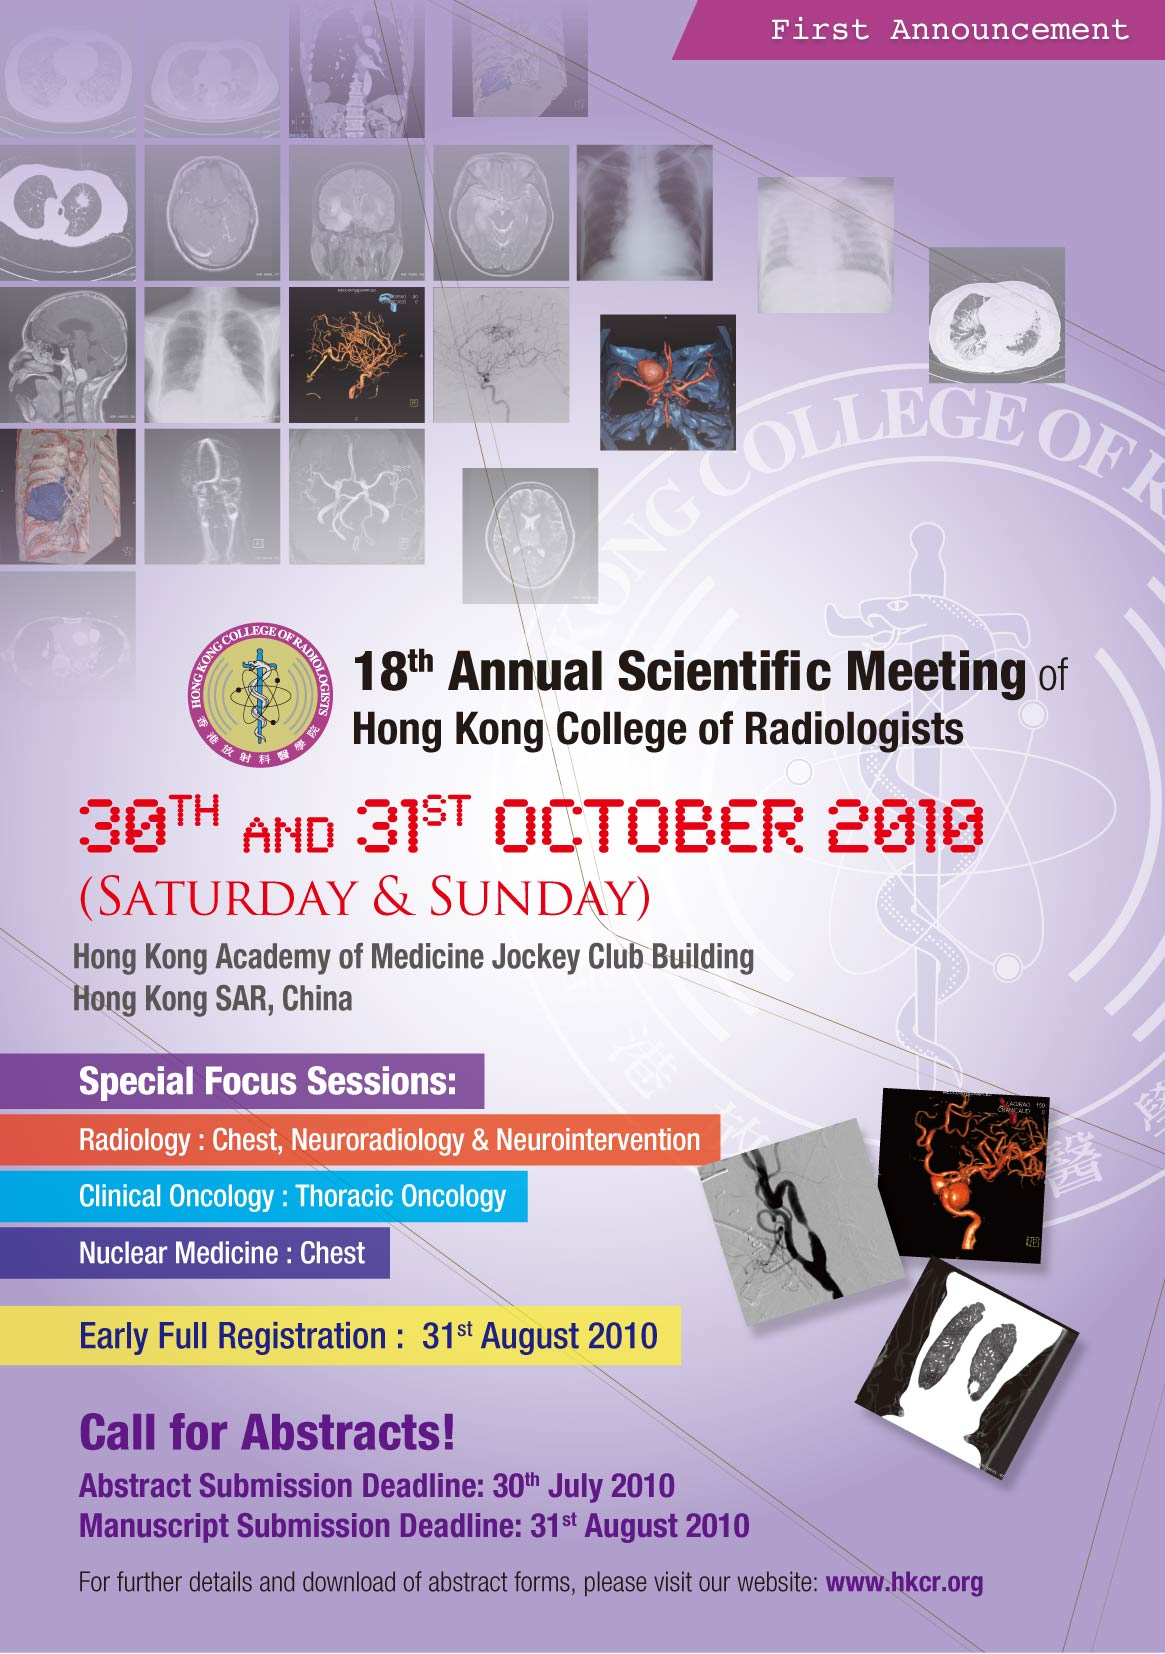 18th Annual Scientific Meeting of Hong Kong College of Radiologists